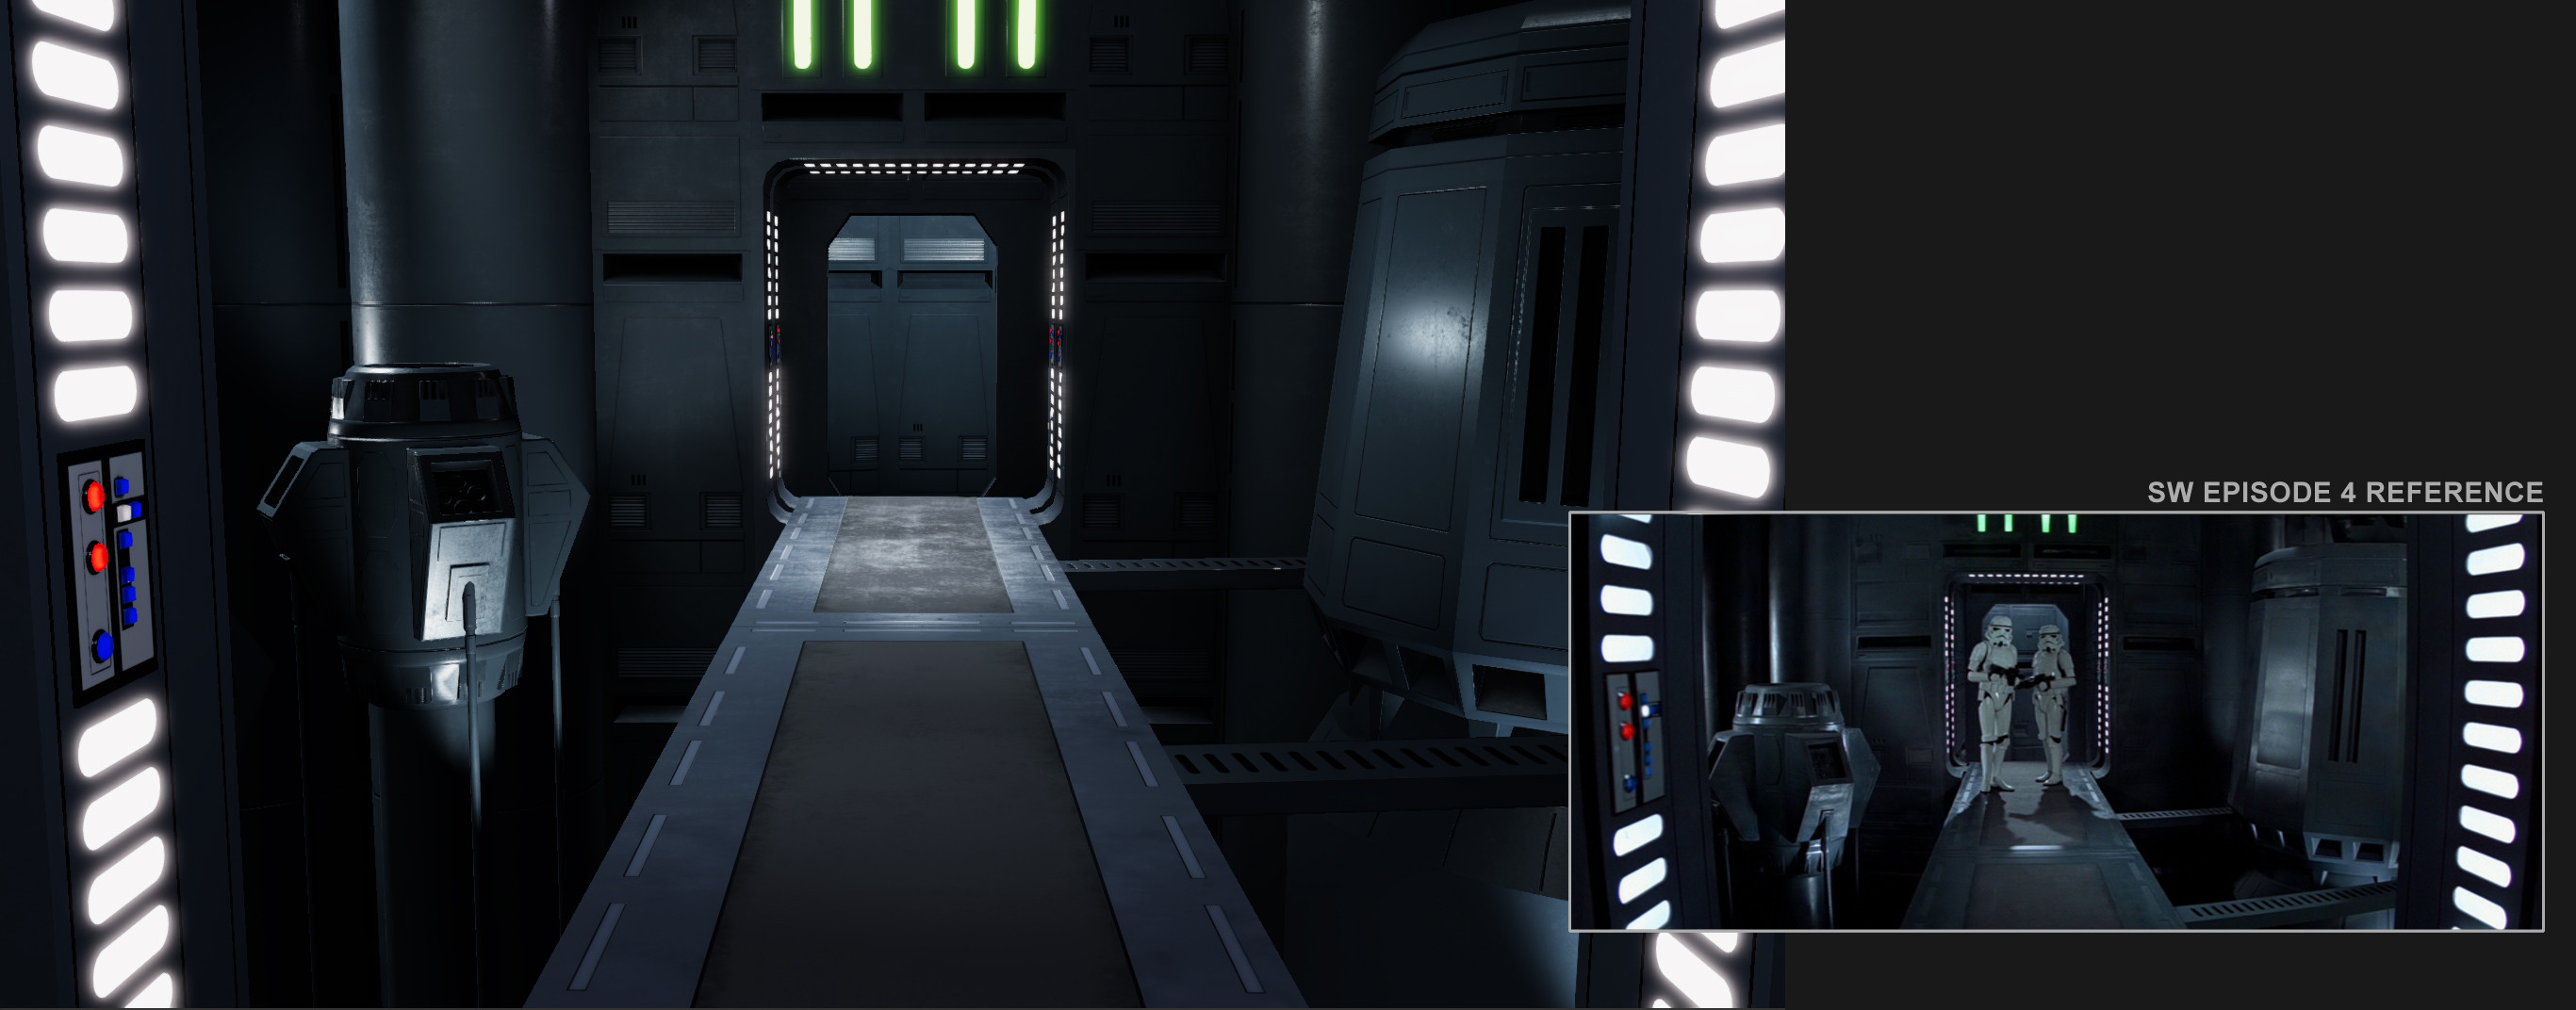 Unity screenshot. Still from the movie on the right for comparison.